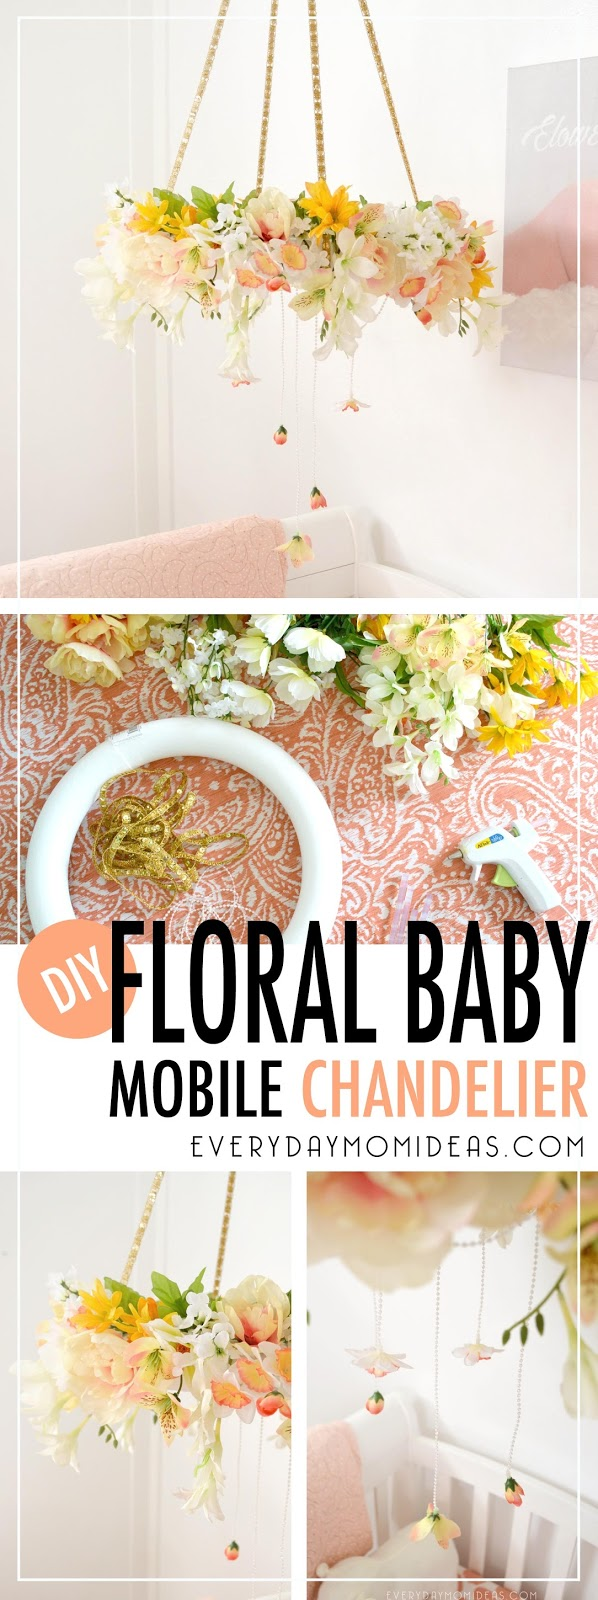 Diy floral baby mobil chandelier full tutorial everyday mom ideas please share this pinterest friendly image below with your friends and family on pinterest or save it to use later when you make your own flower baby mobil arubaitofo Gallery